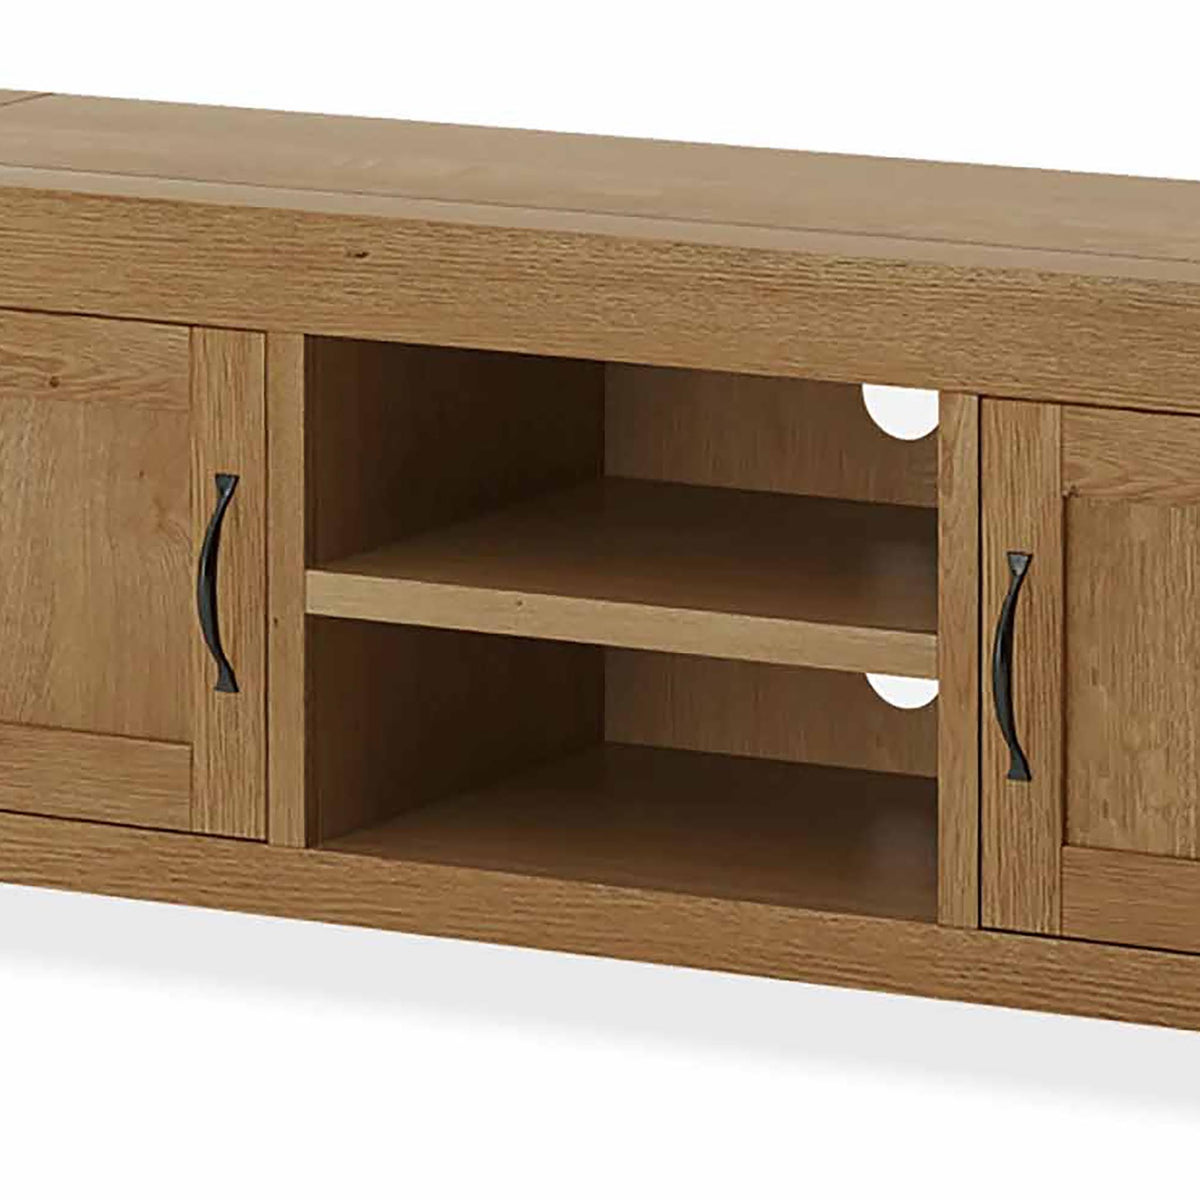 The Abbey Grande 160cm Oak TV Stand - Close Up of Mid Section